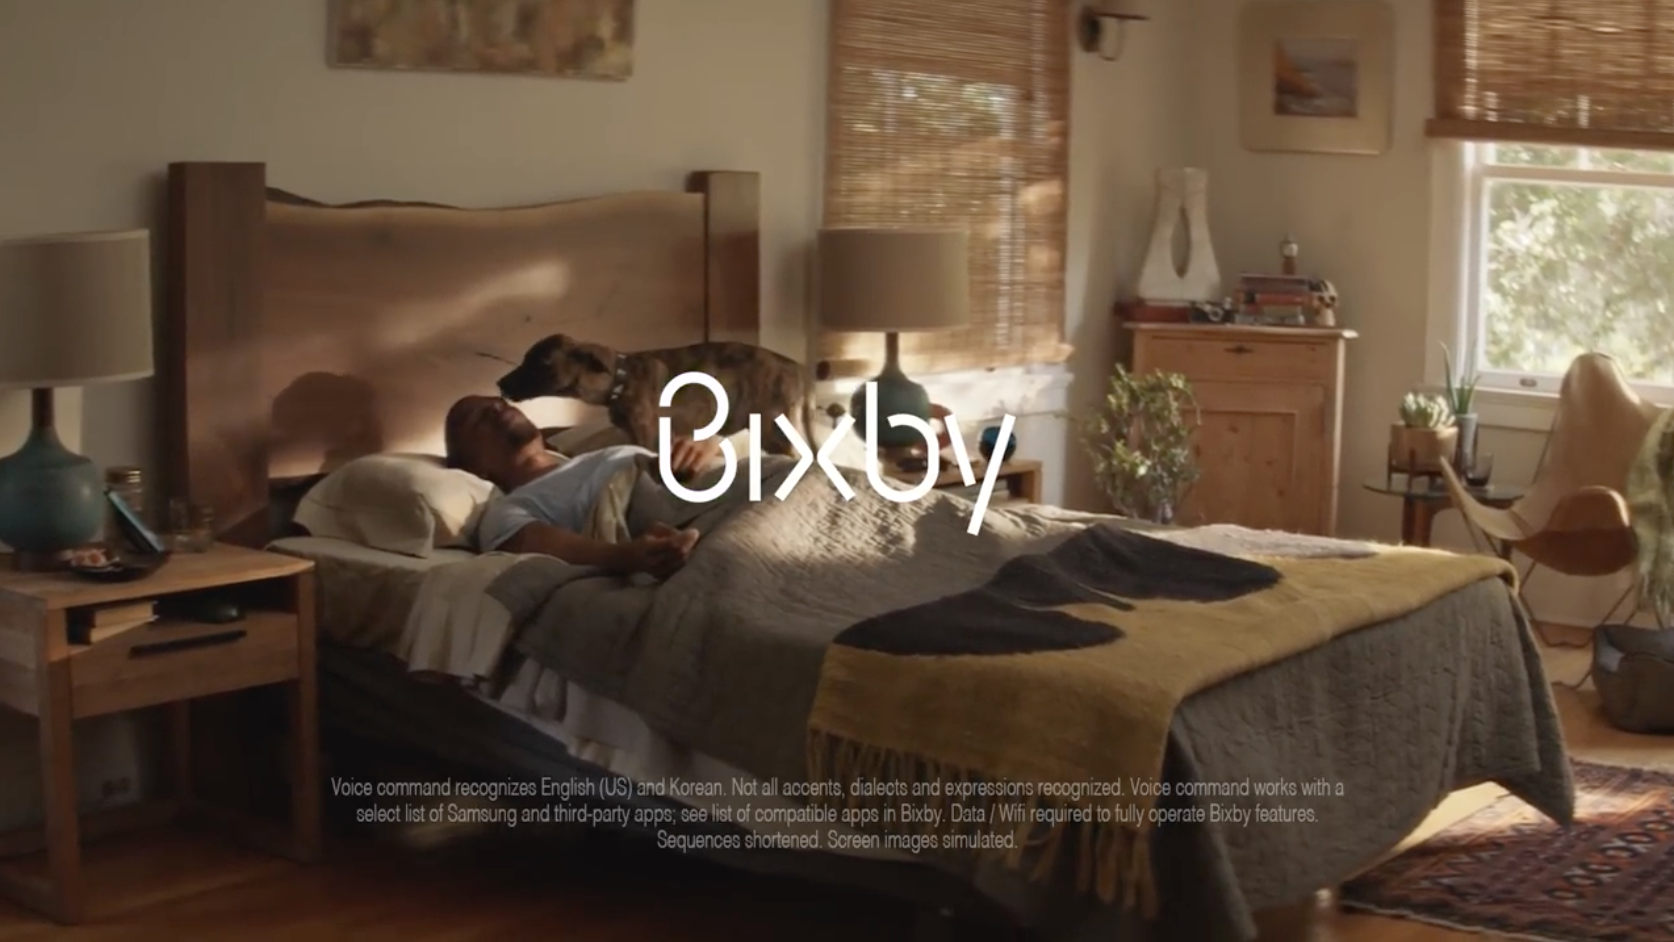 Kevin L. Walker / Samsung Bixby / Commercial Still